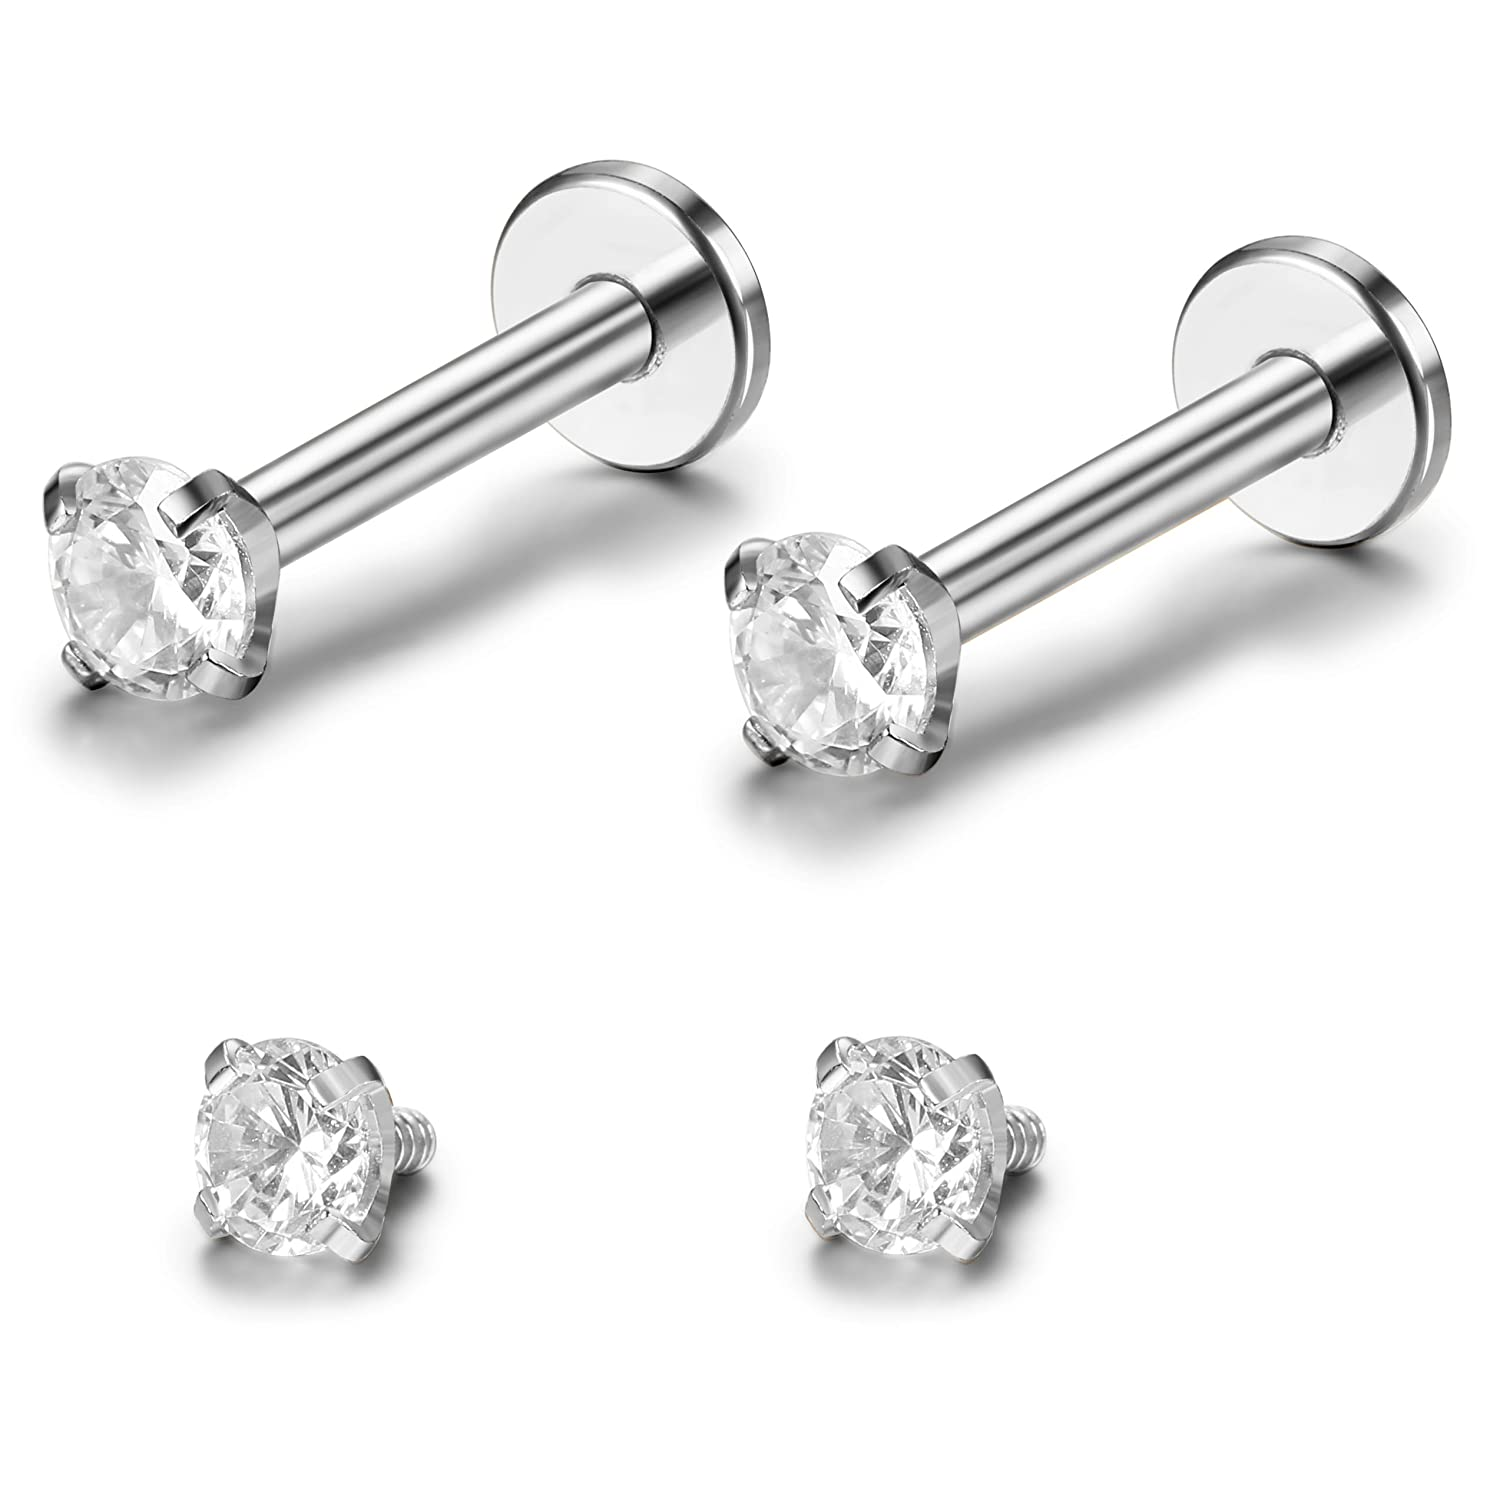 ORAZIO 2-3Pcs 16G Stainless Steel Nose Studs CZ Labret Studs Lip Rings Ear Piercings Studs Silver-tone 2-3MM